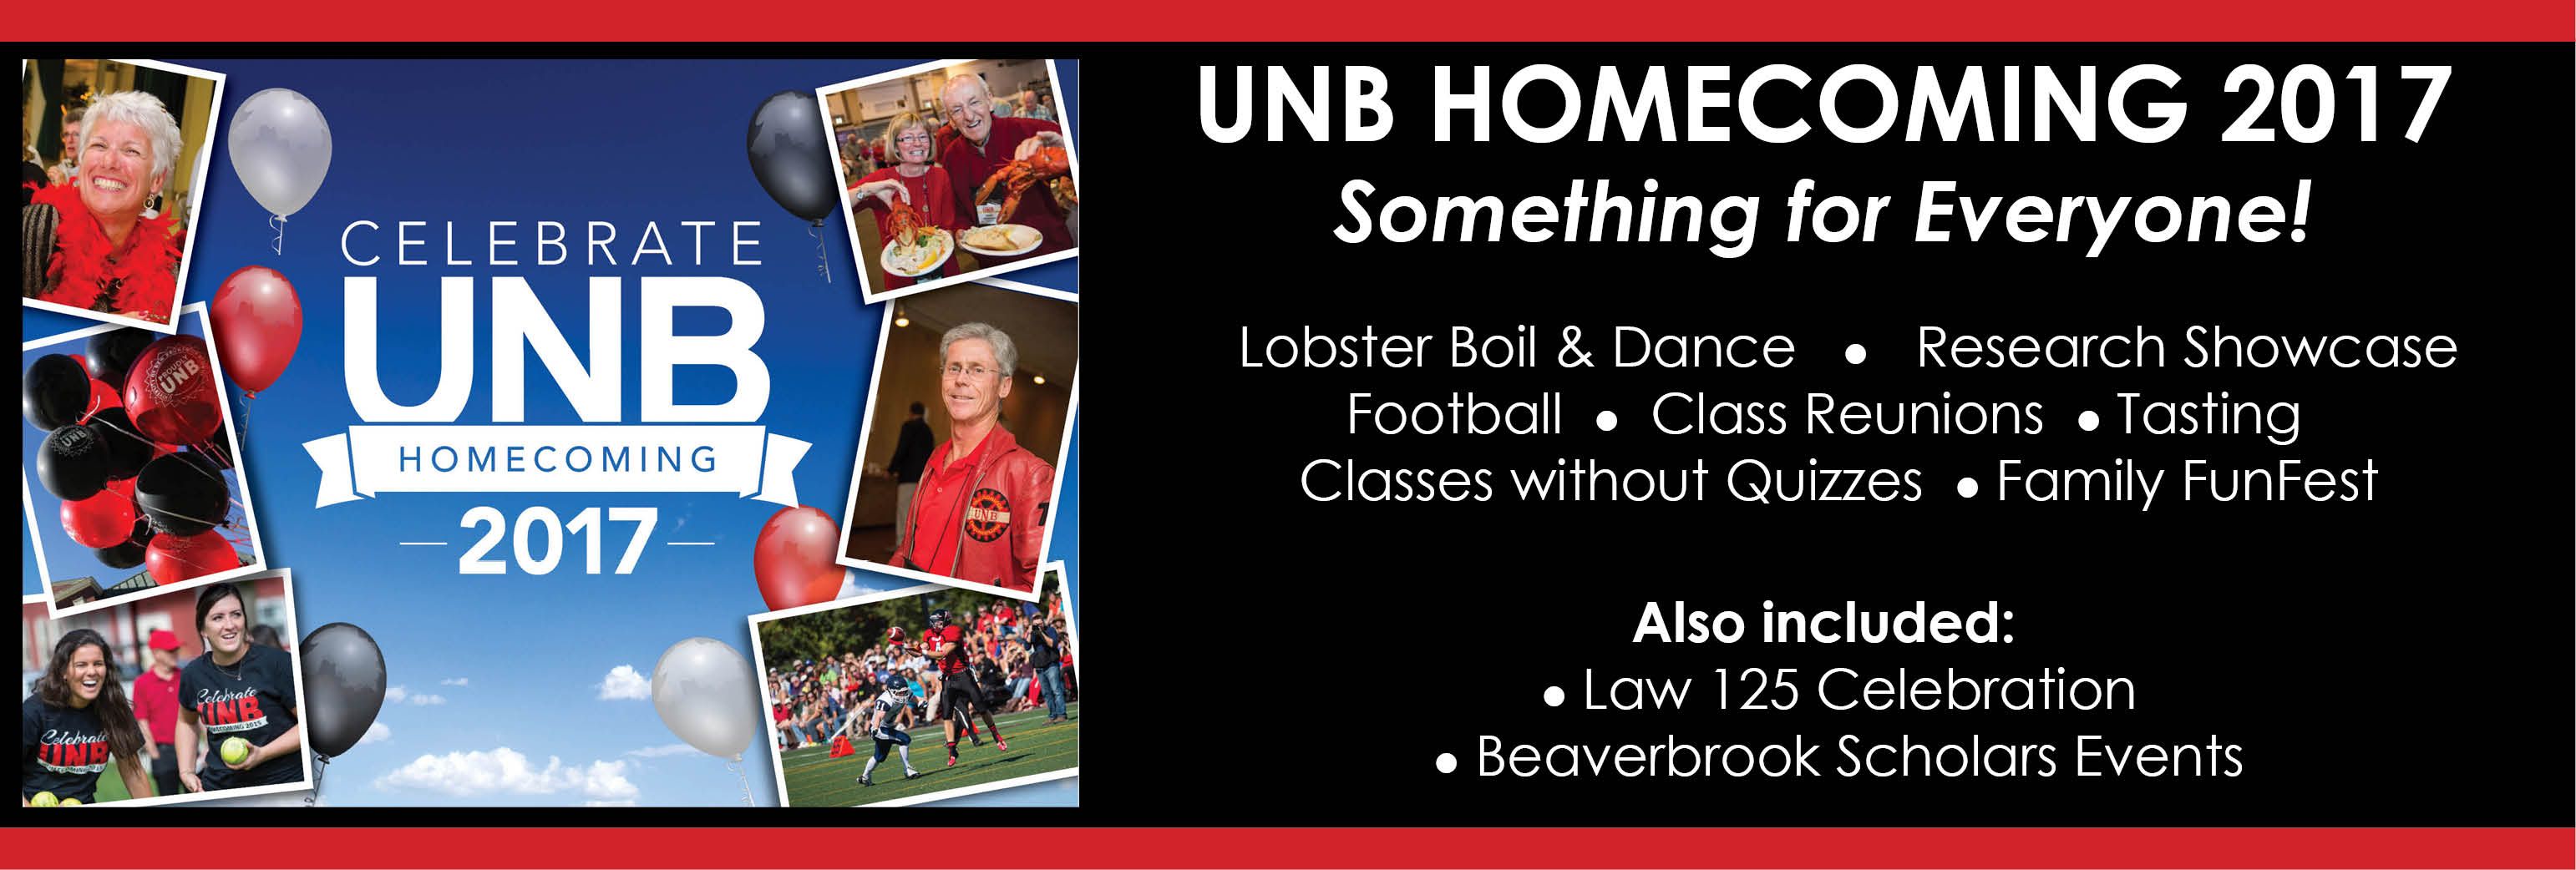 Celebrate UNB: Homecoming Weekend 2017